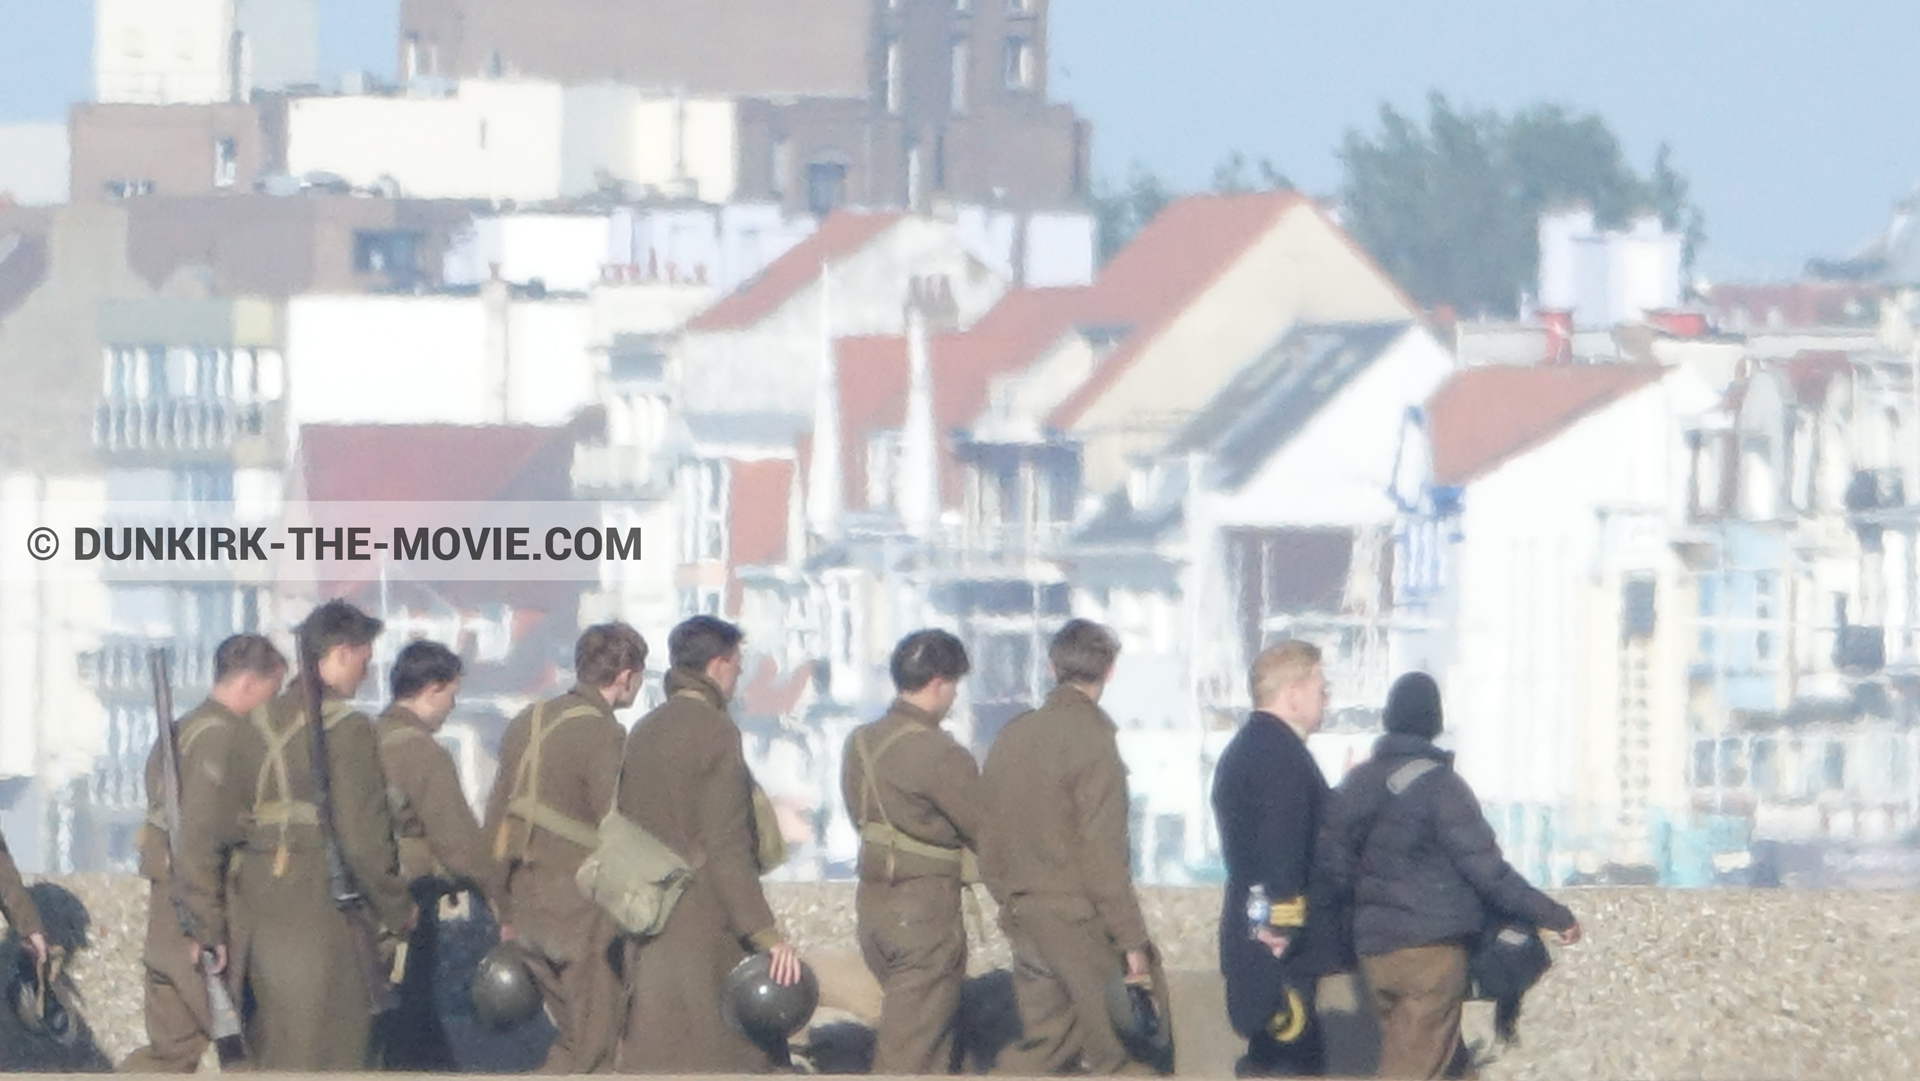 Picture with supernumeraries, EST pier, Kenneth Branagh, Malo les Bains,  from behind the scene of the Dunkirk movie by Nolan